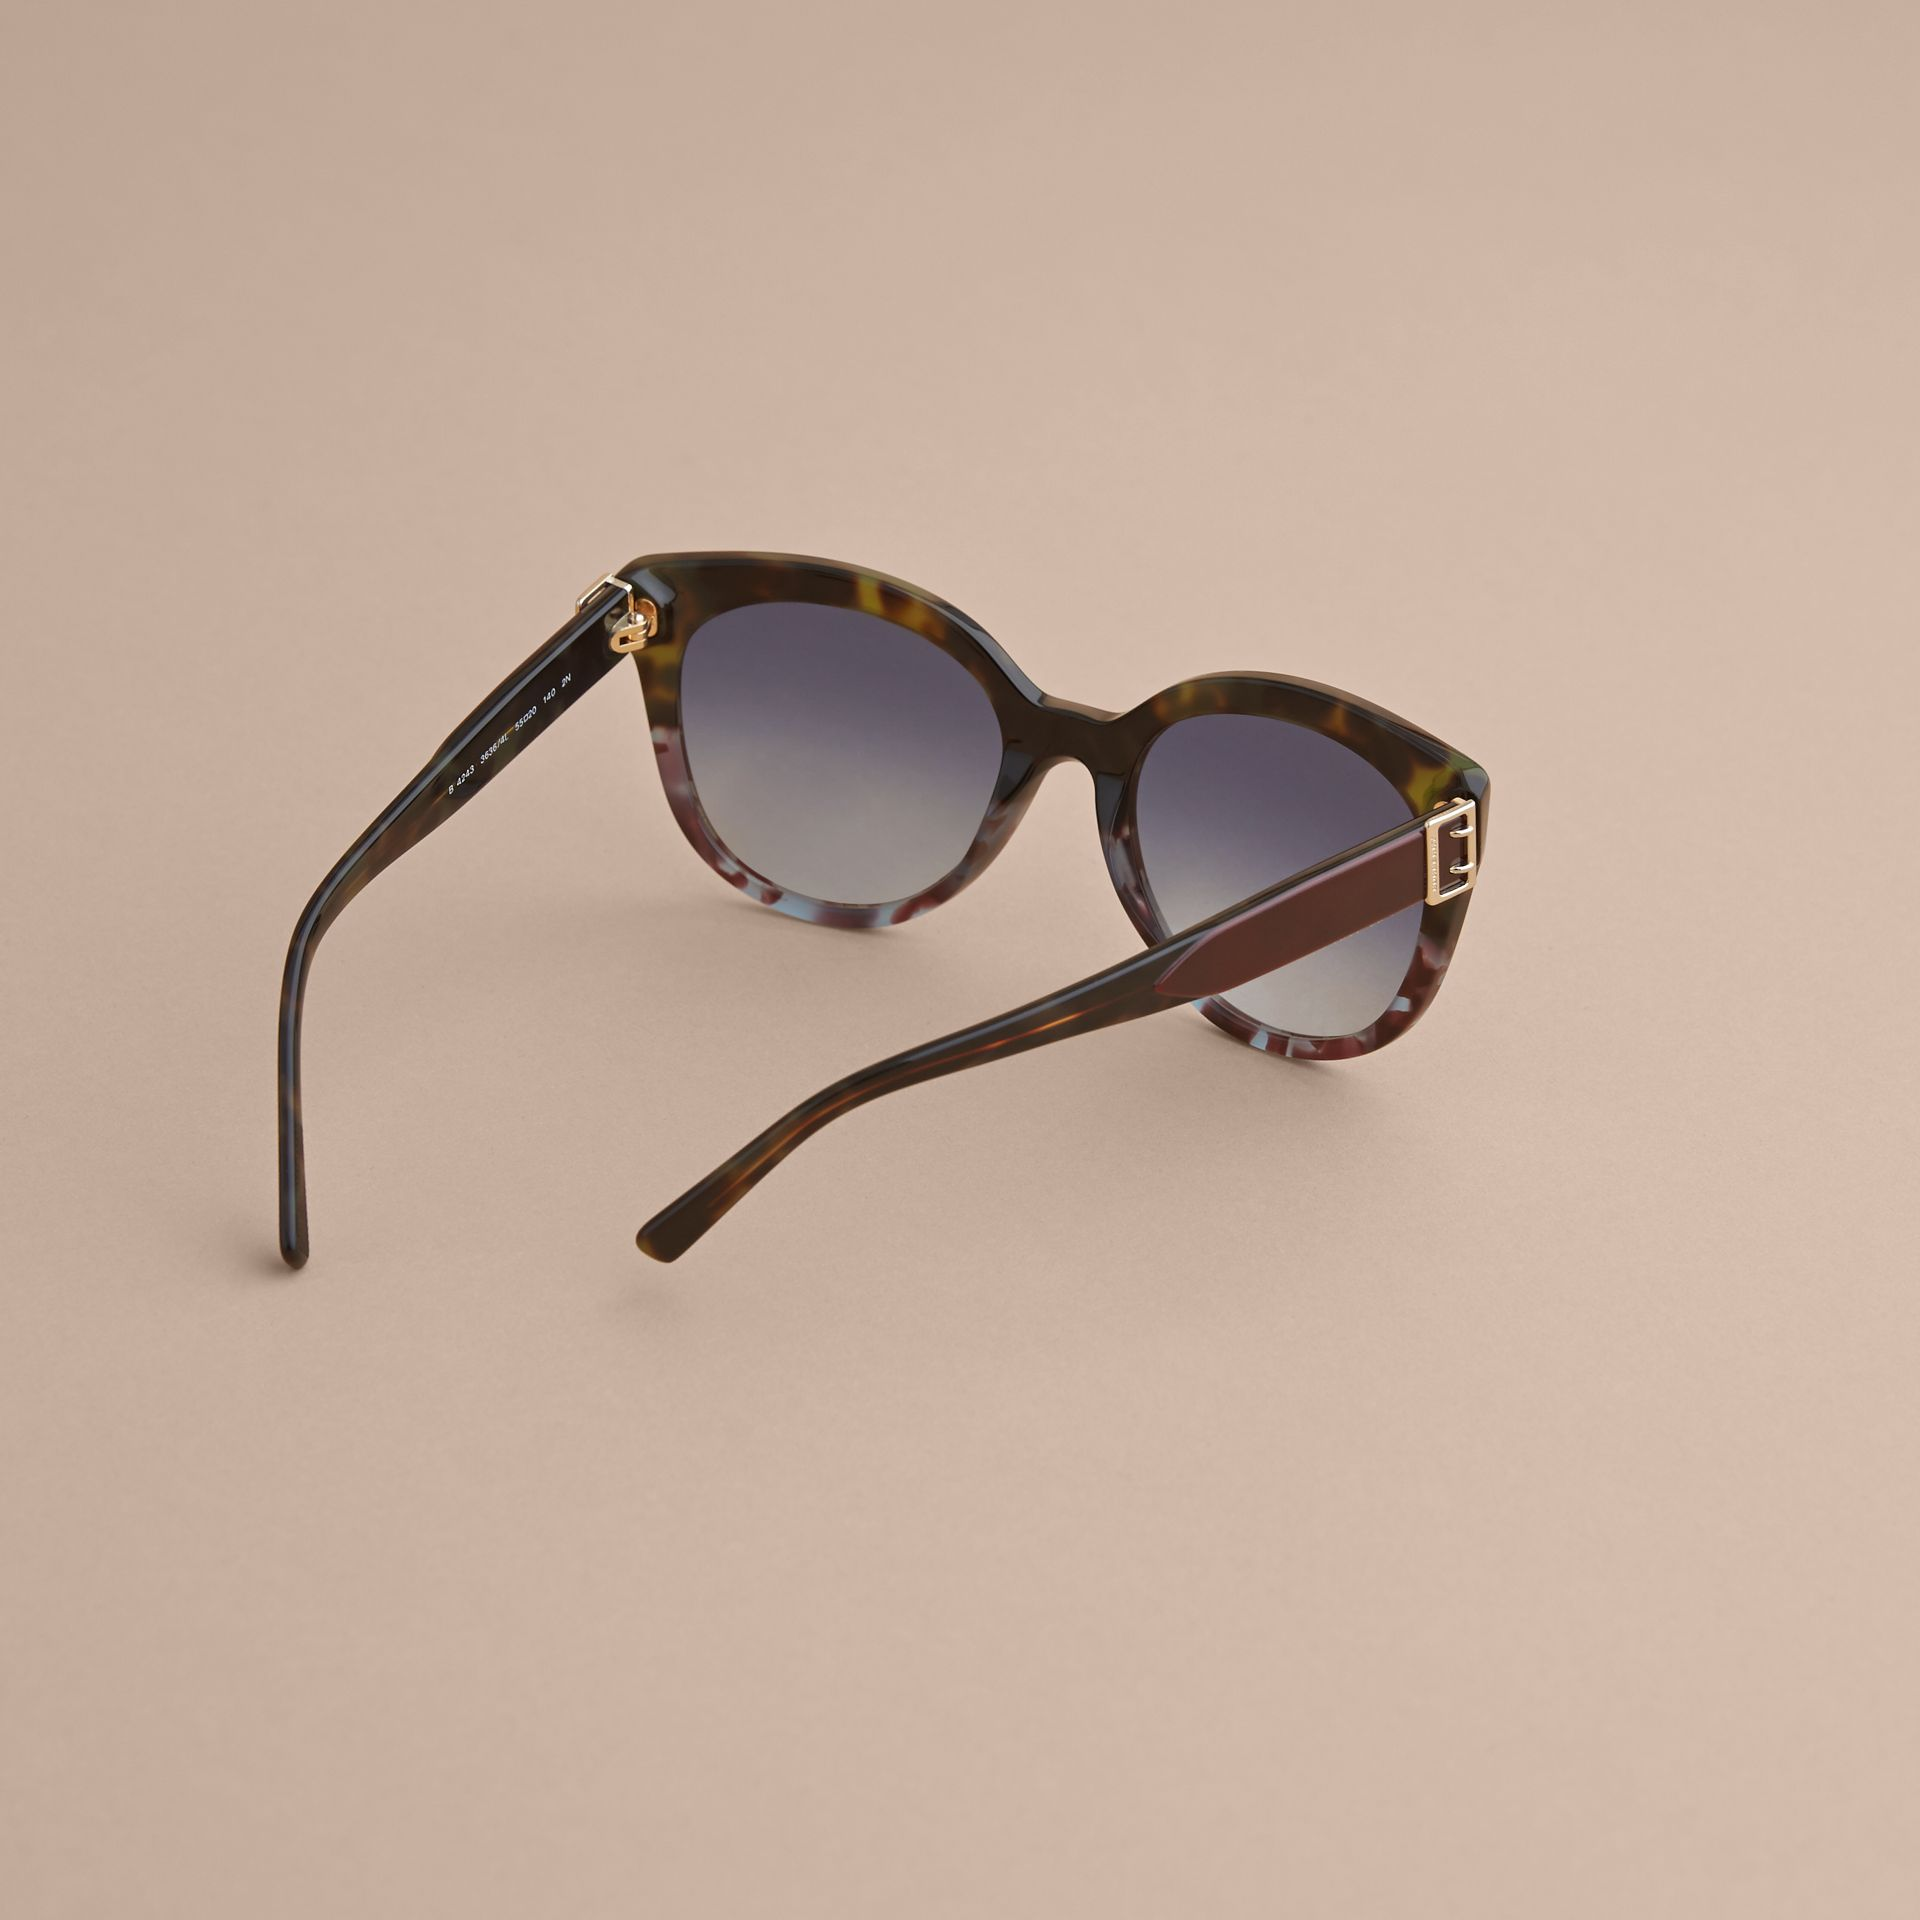 Buckle Detail Cat-eye Frame Sunglasses in Apple Green - Women | Burberry United Kingdom - gallery image 3